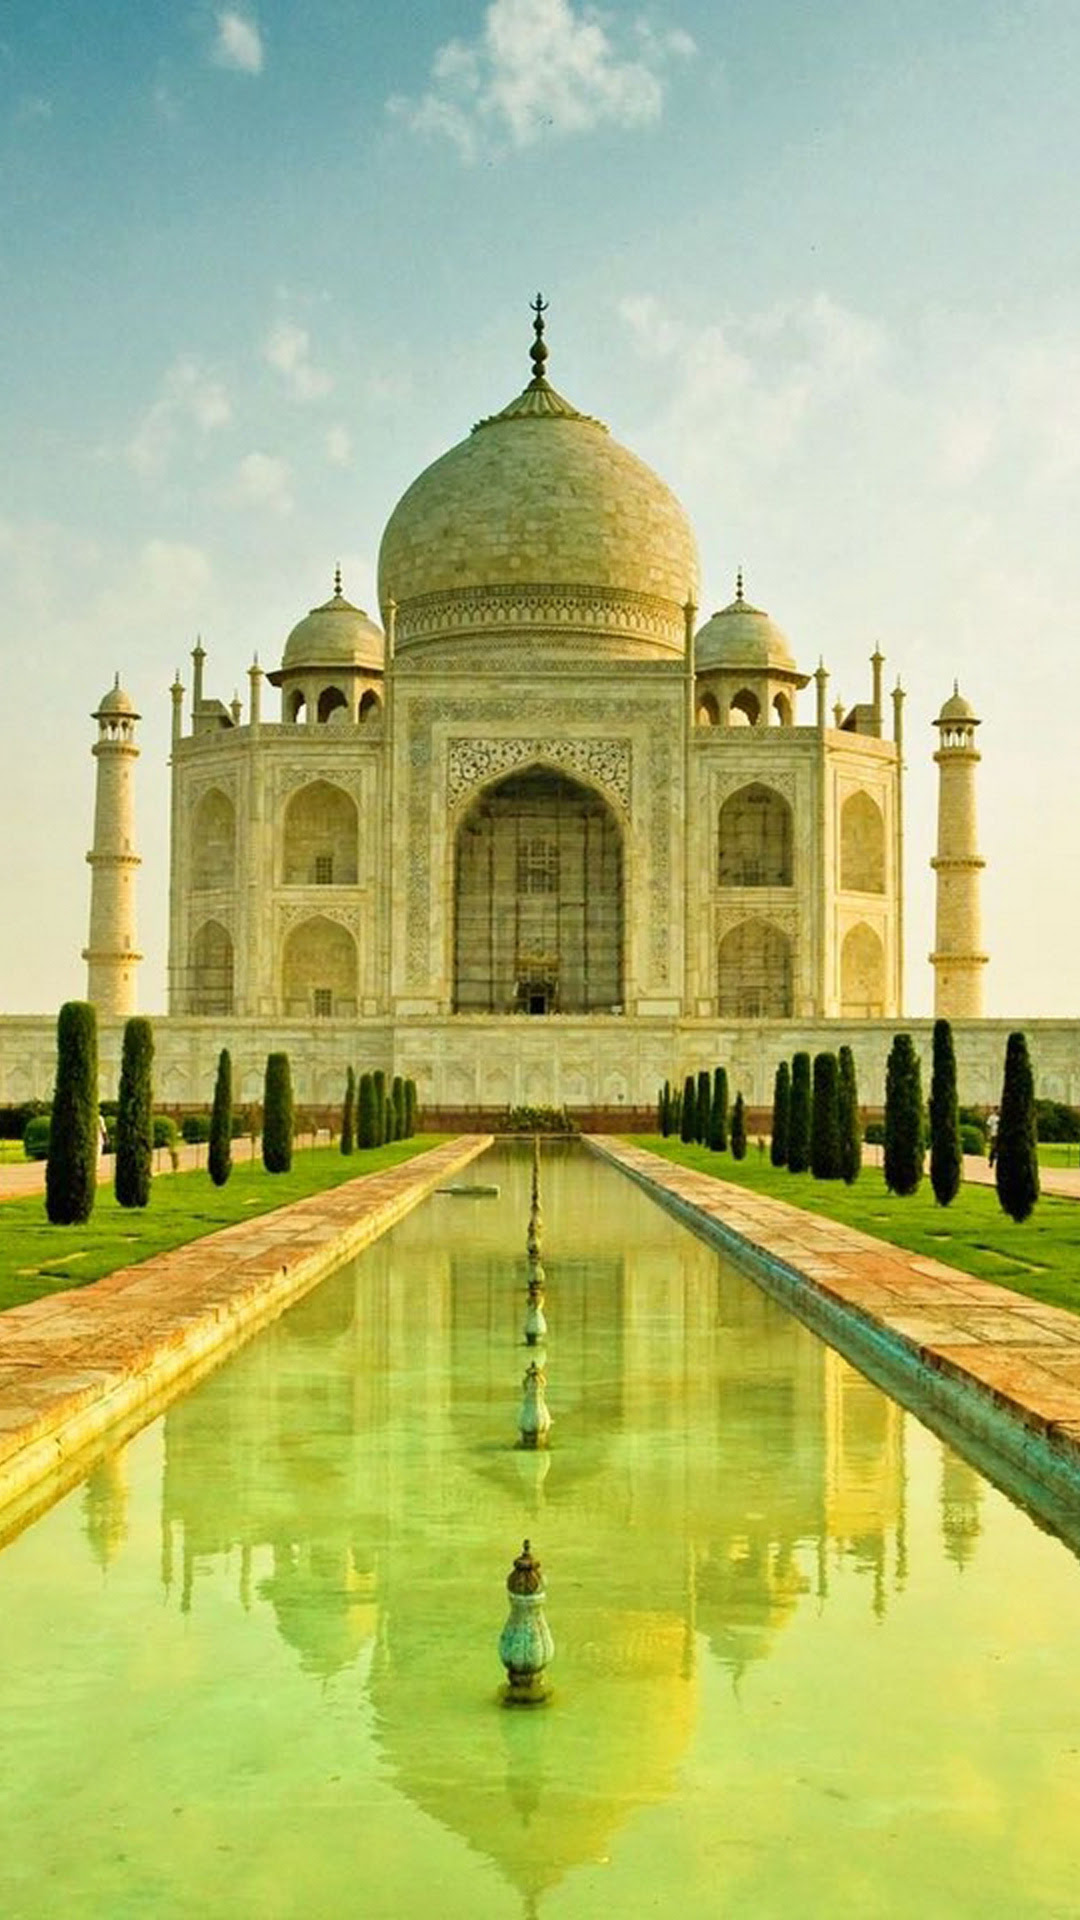 Unduh 45+ Background Hd Tajmahal Paling Keren